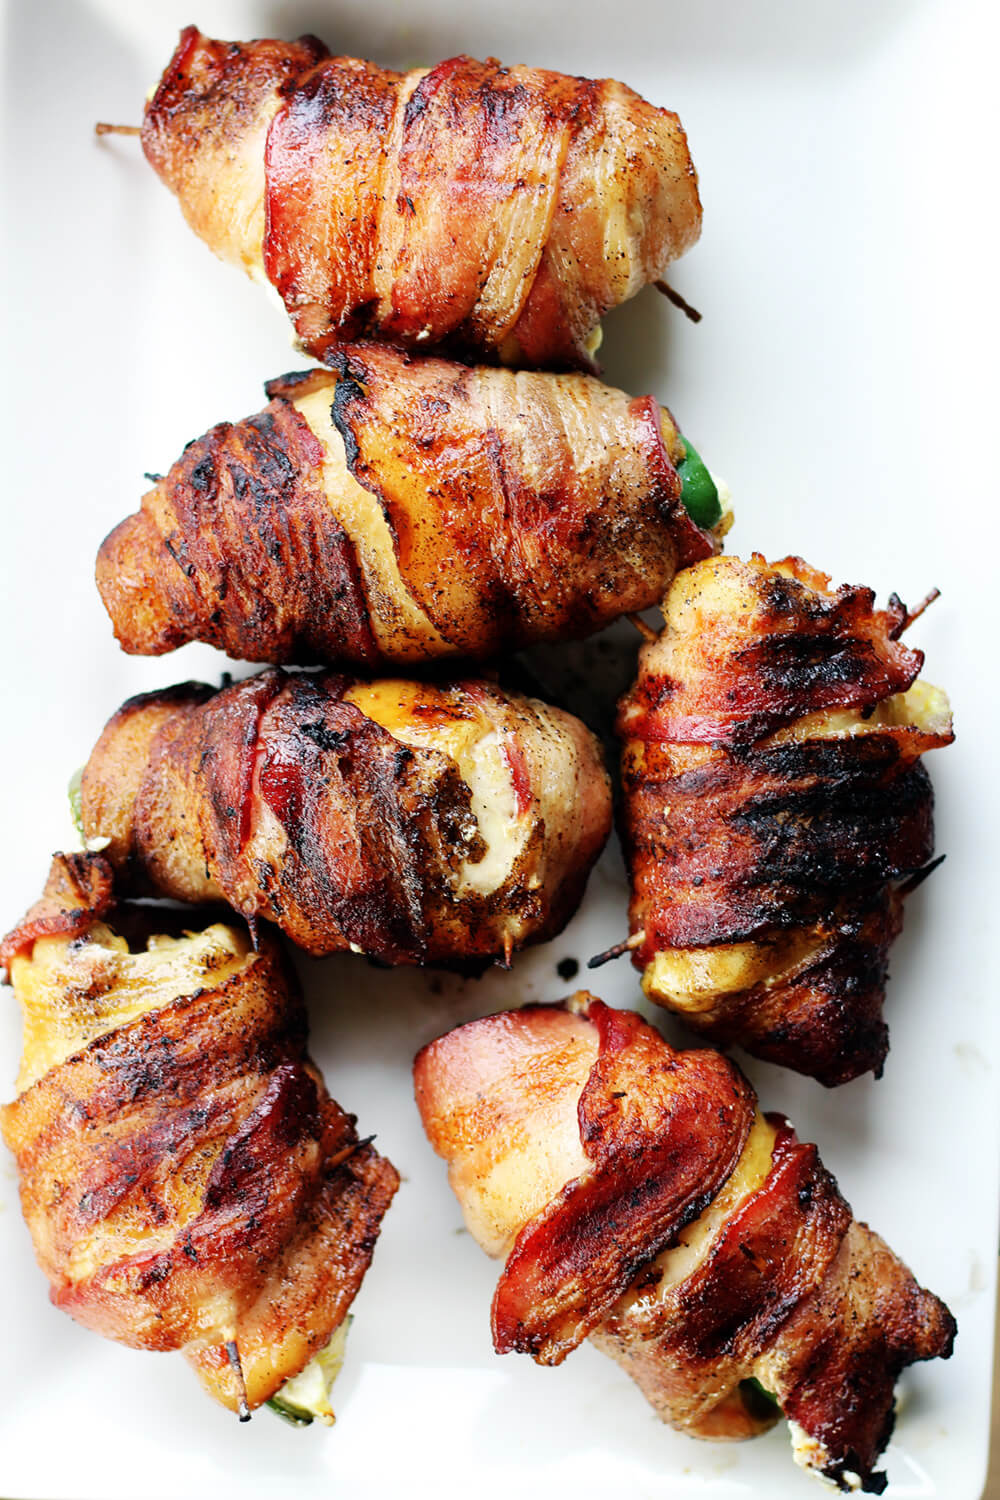 grilled bacon wrapped stuffed chicken on a white serving platter